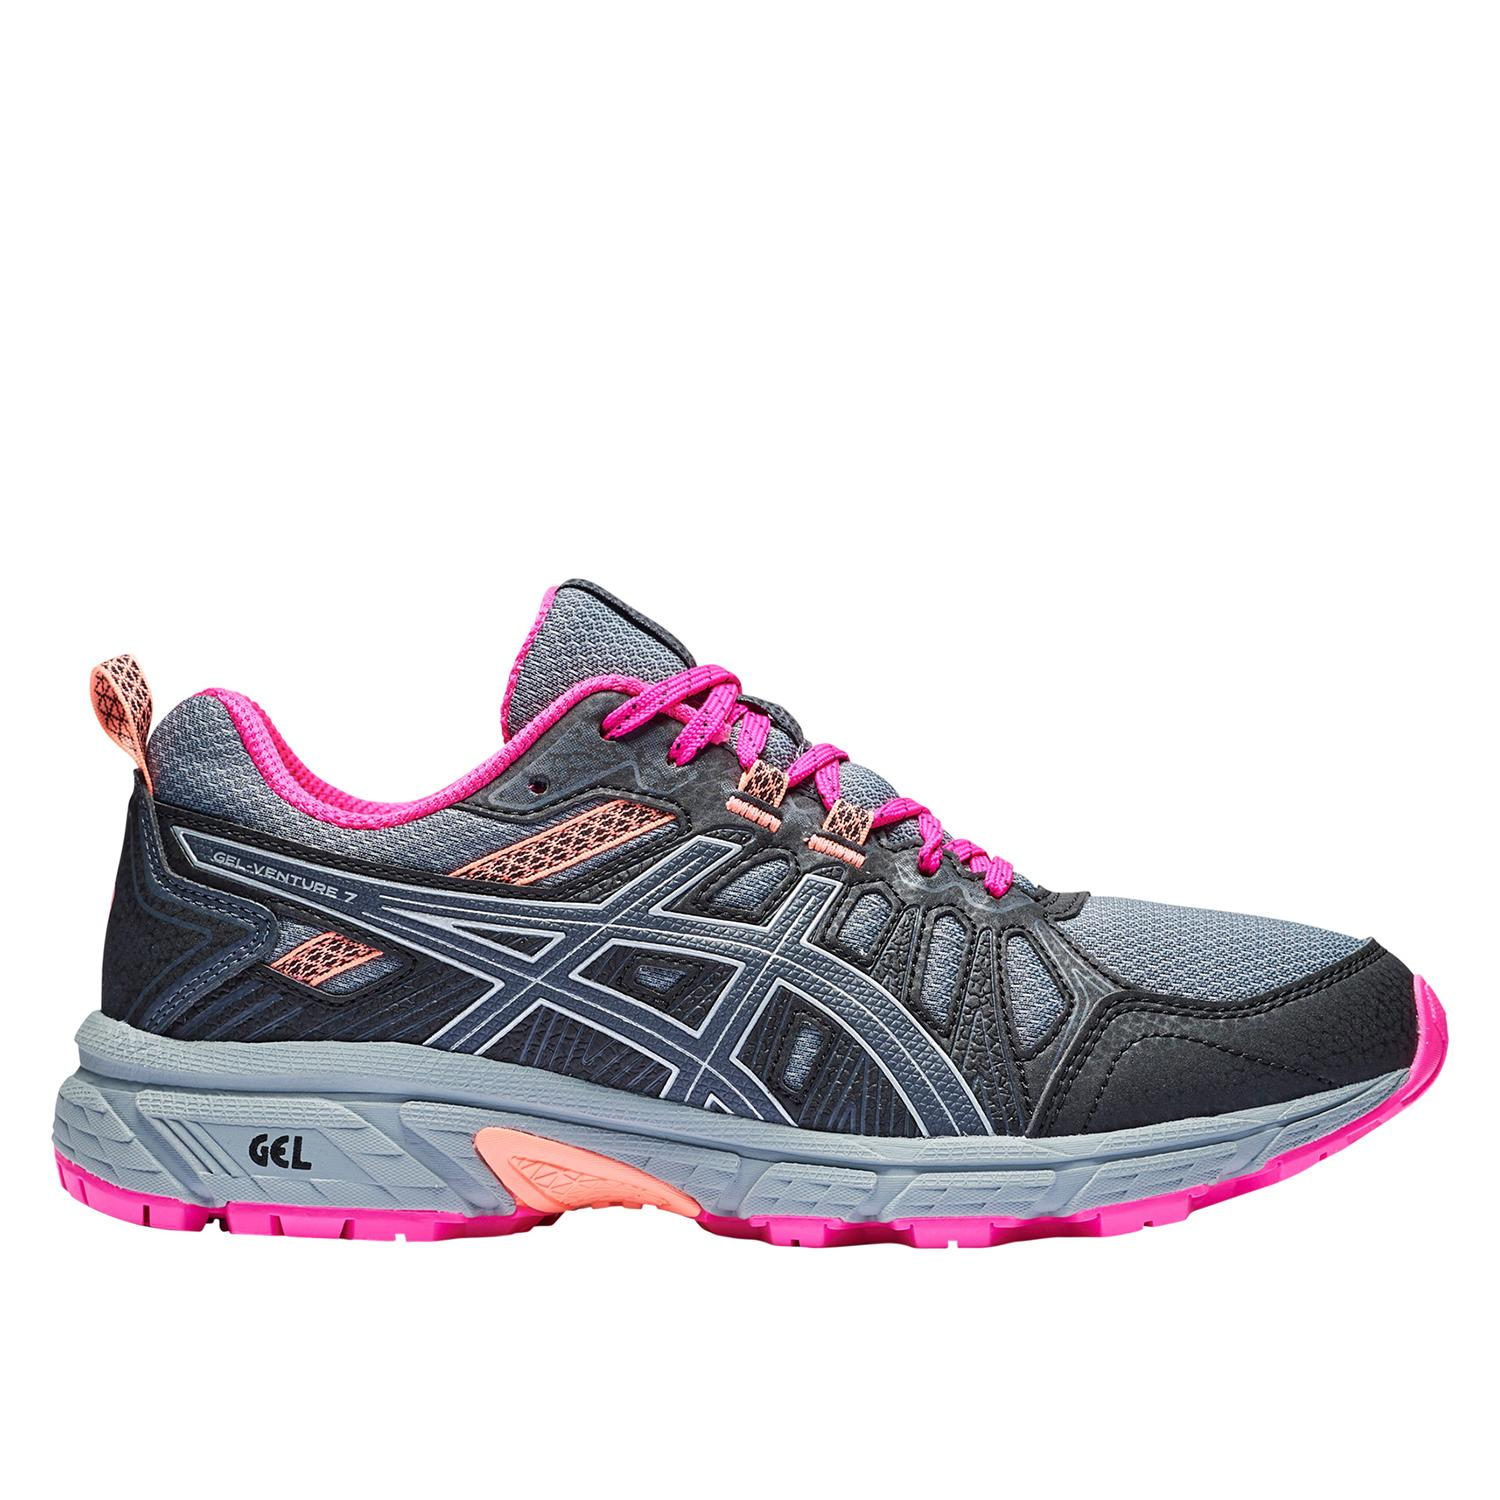 ASICS GEL Venture 7 Women's Trail Shoe